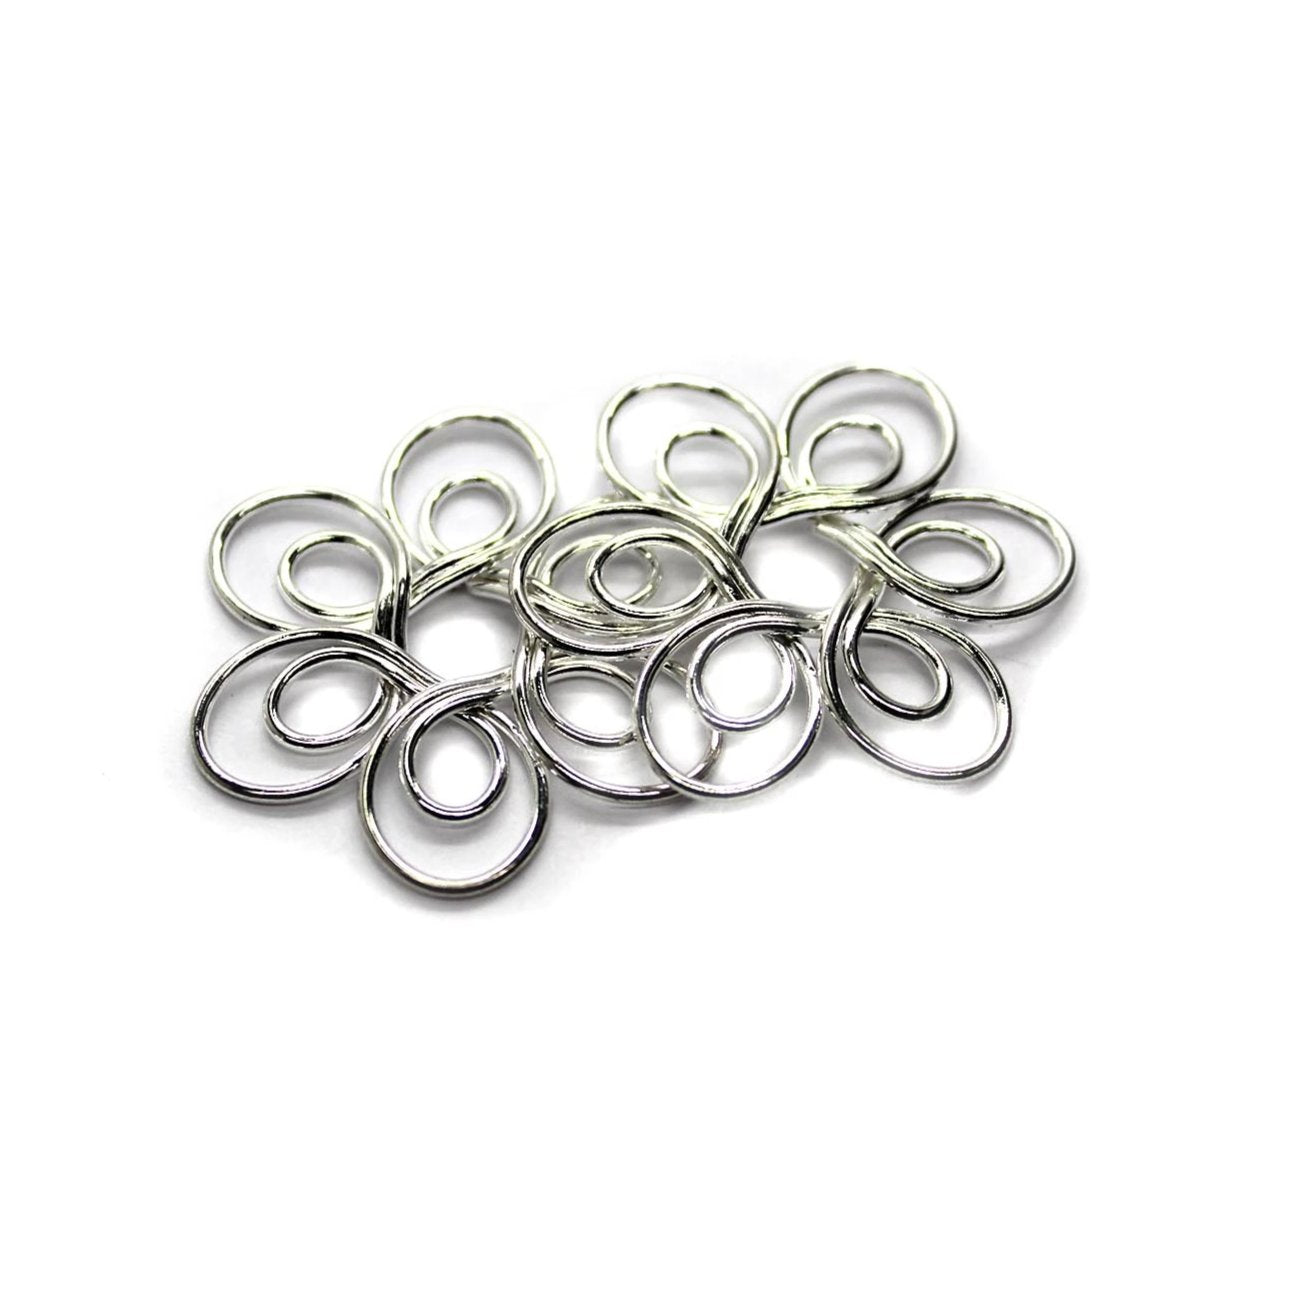 Connector, Flower Charm, Alloy, Silver, 30mm x 30mm, Sold Per pkg of 2